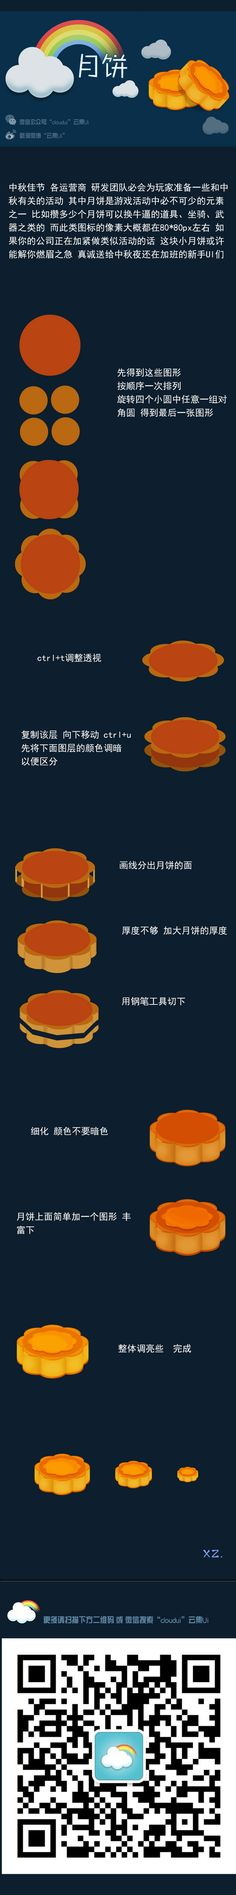 Game Tutorials icon ui exchange QQ group 108 moon cake ... @ Ah oom collected material (124 Figure) _ petal